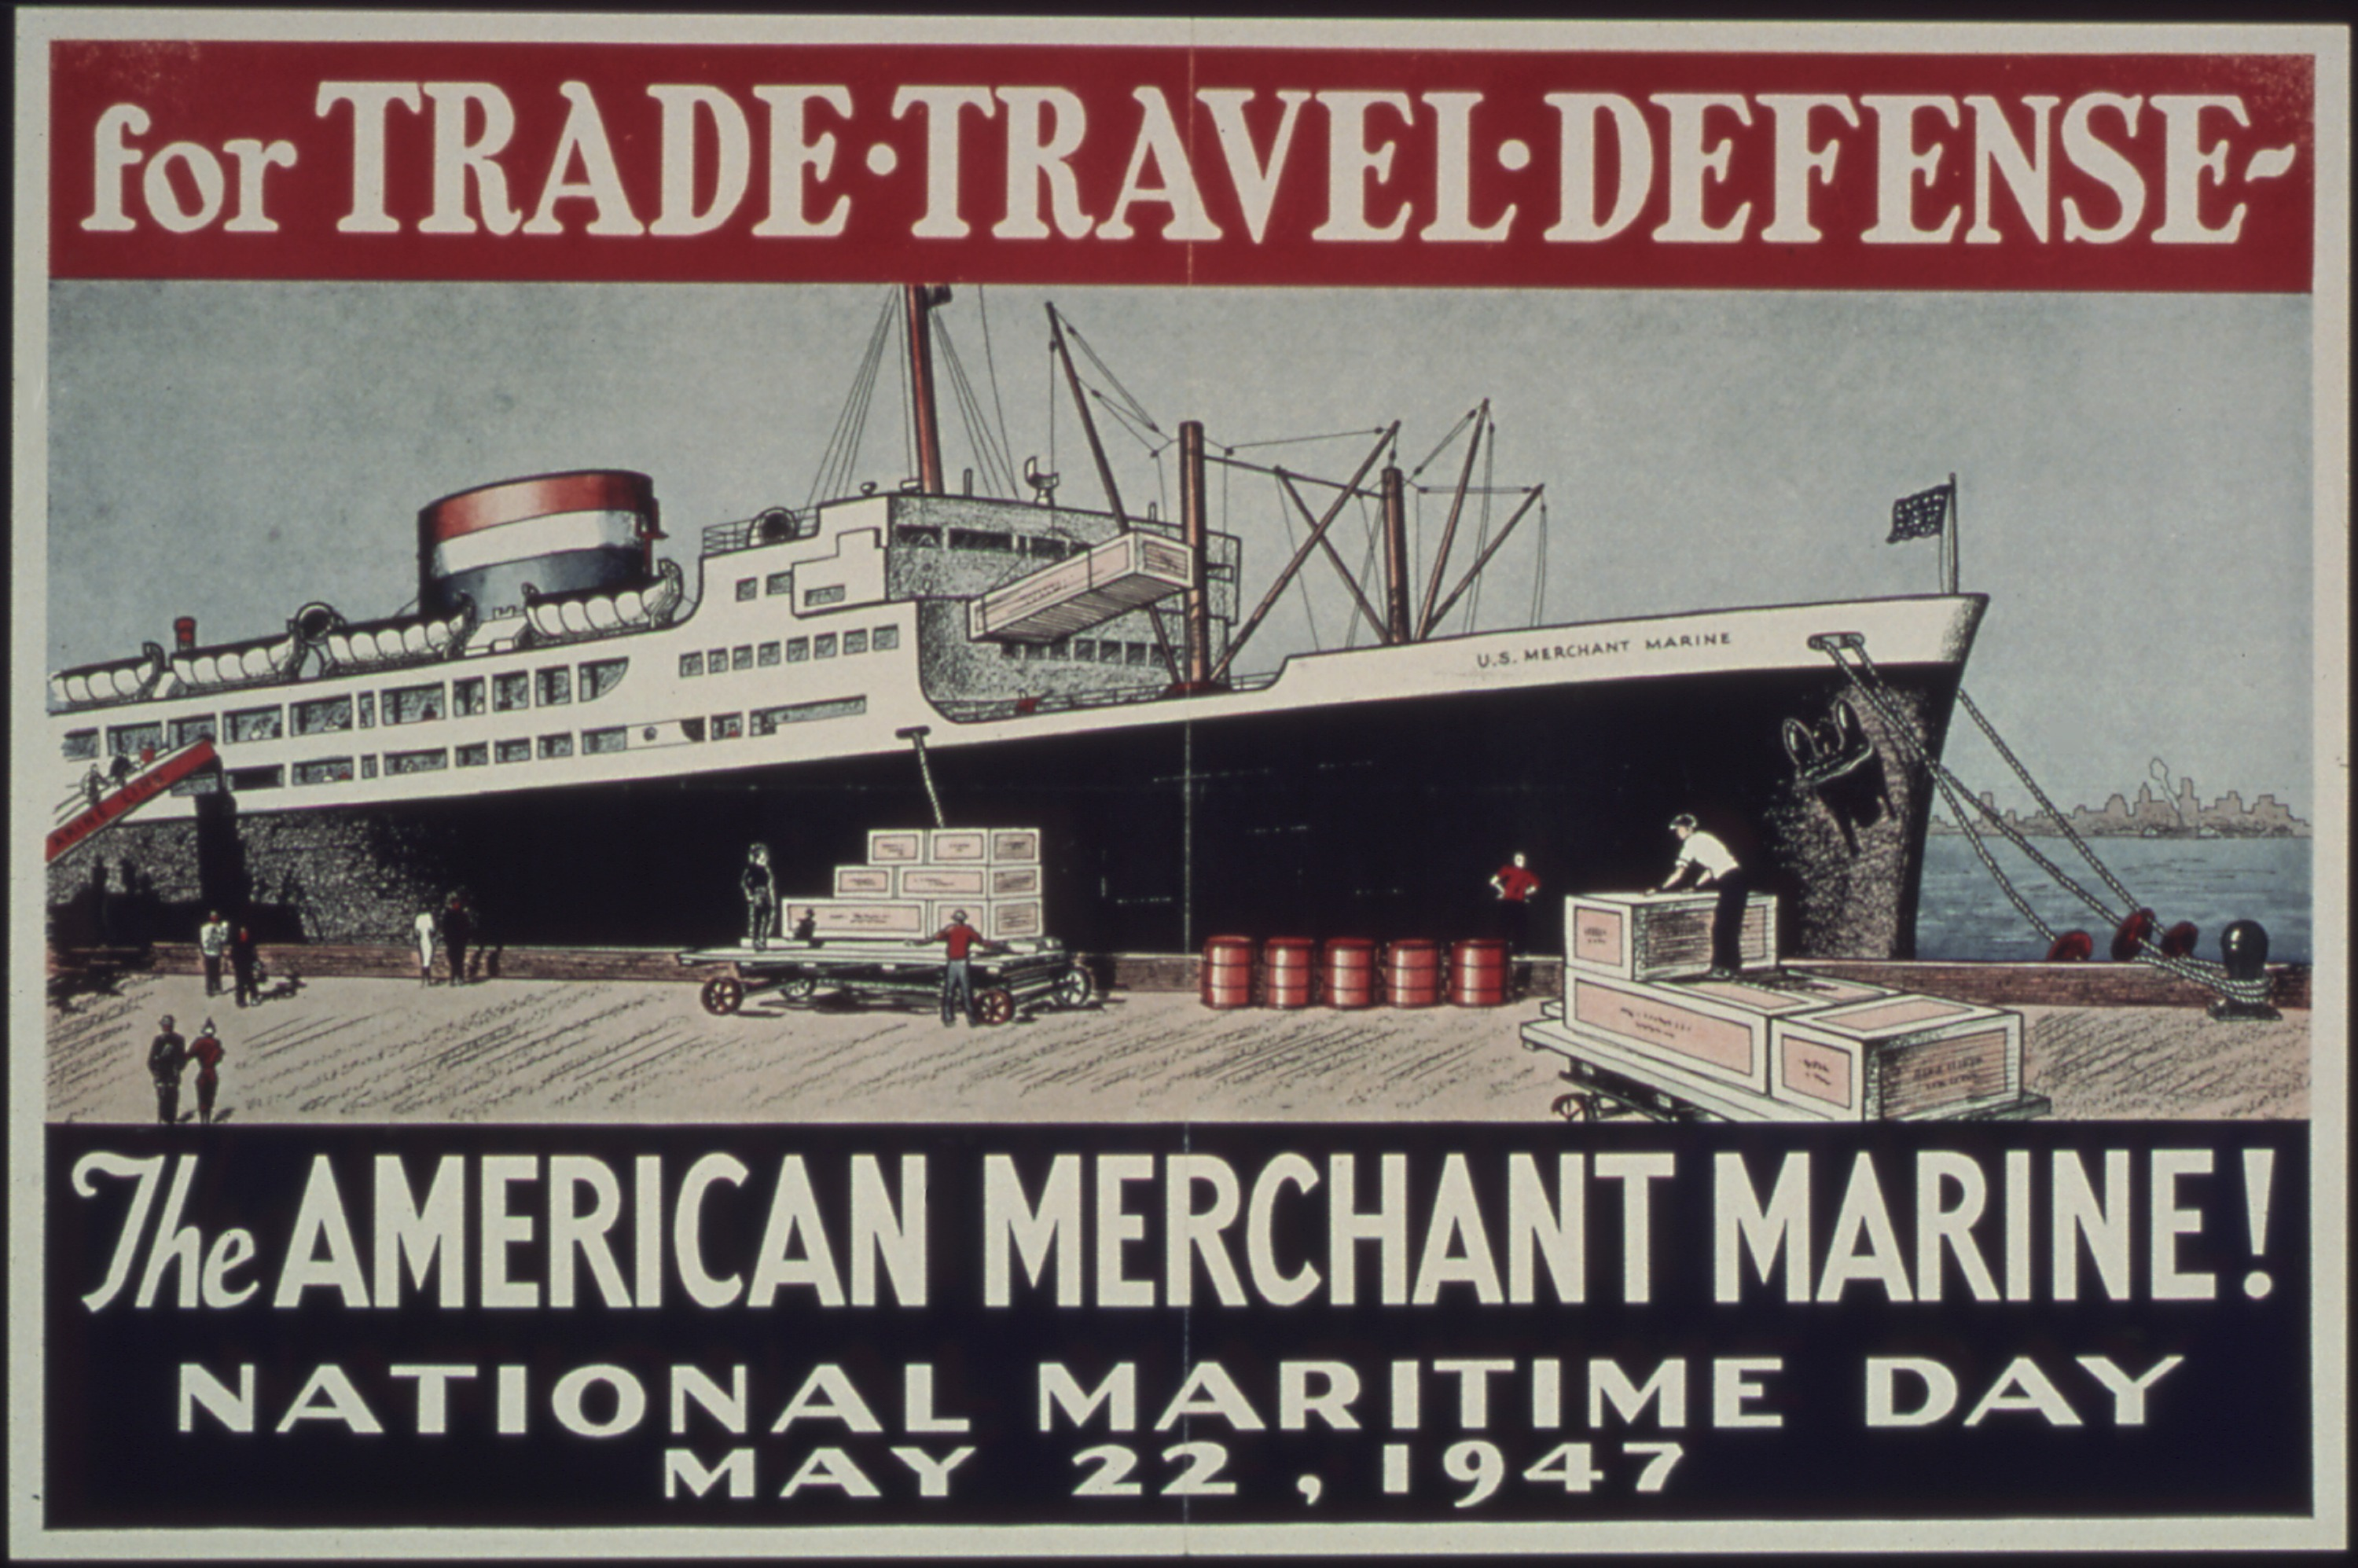 National Maritime Day, 1947